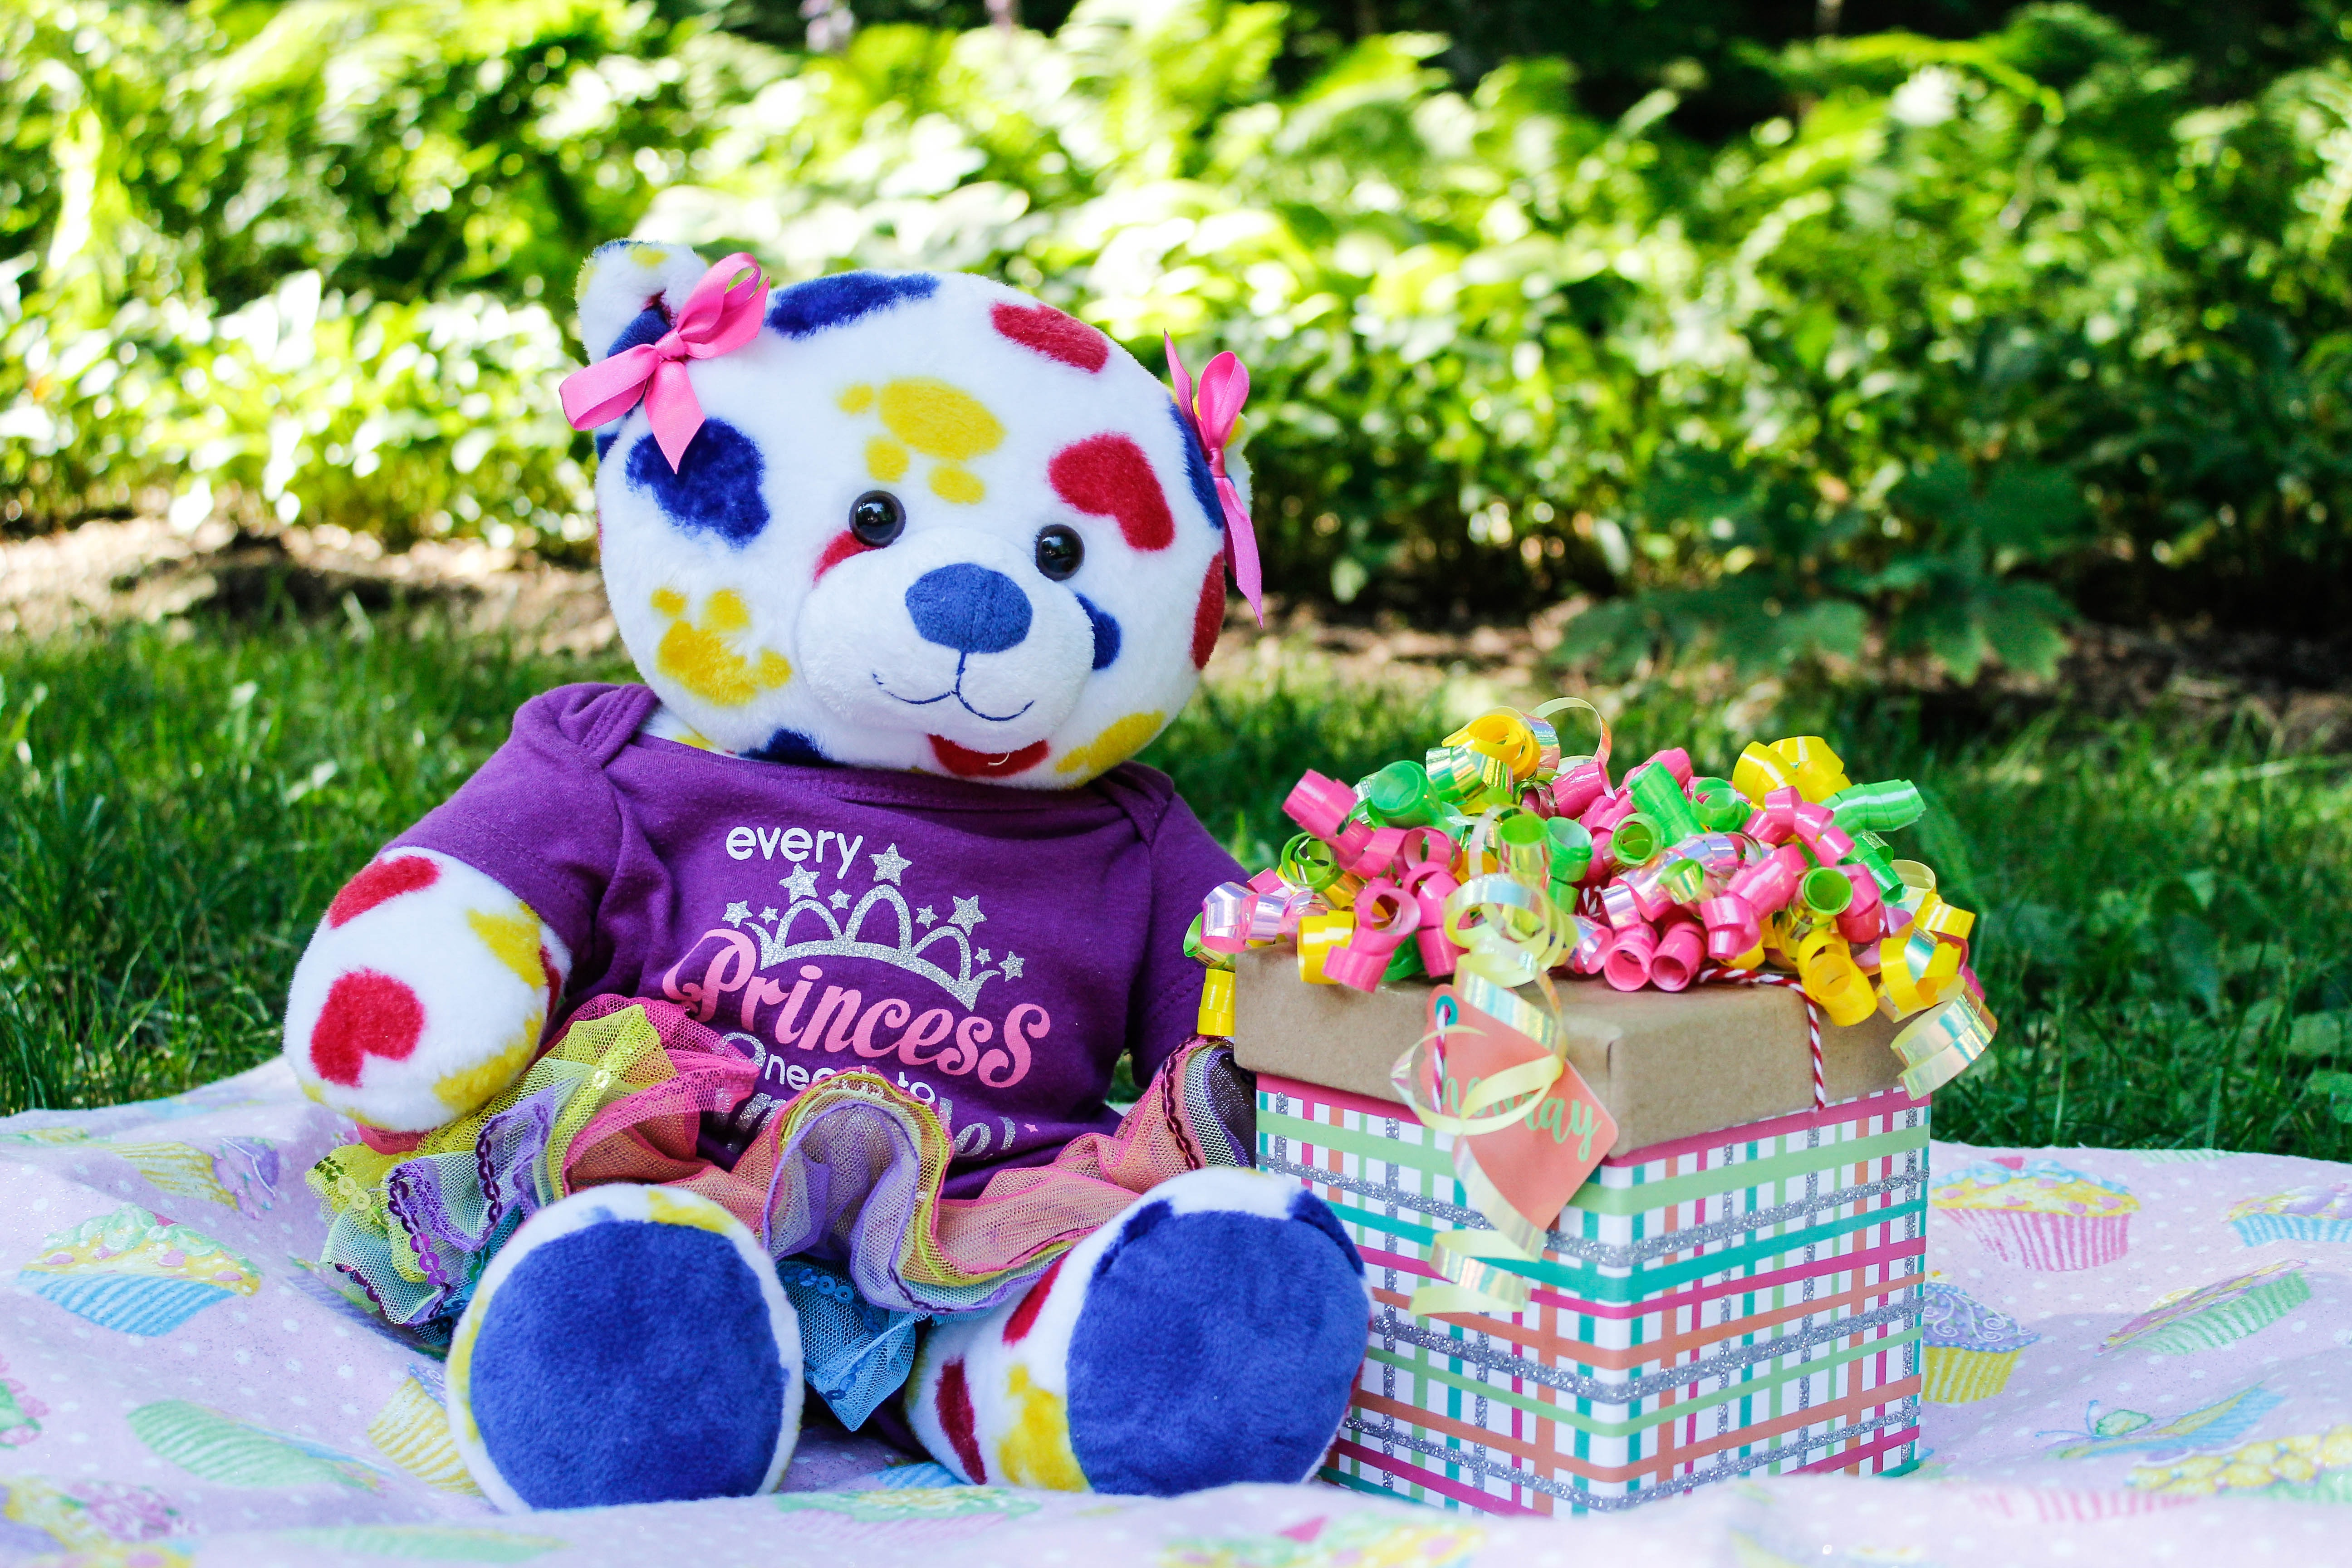 100 interesting teddy bear photos pexels free stock photos related searches cute love baby flower flowers white teddy bear reading book izmirmasajfo